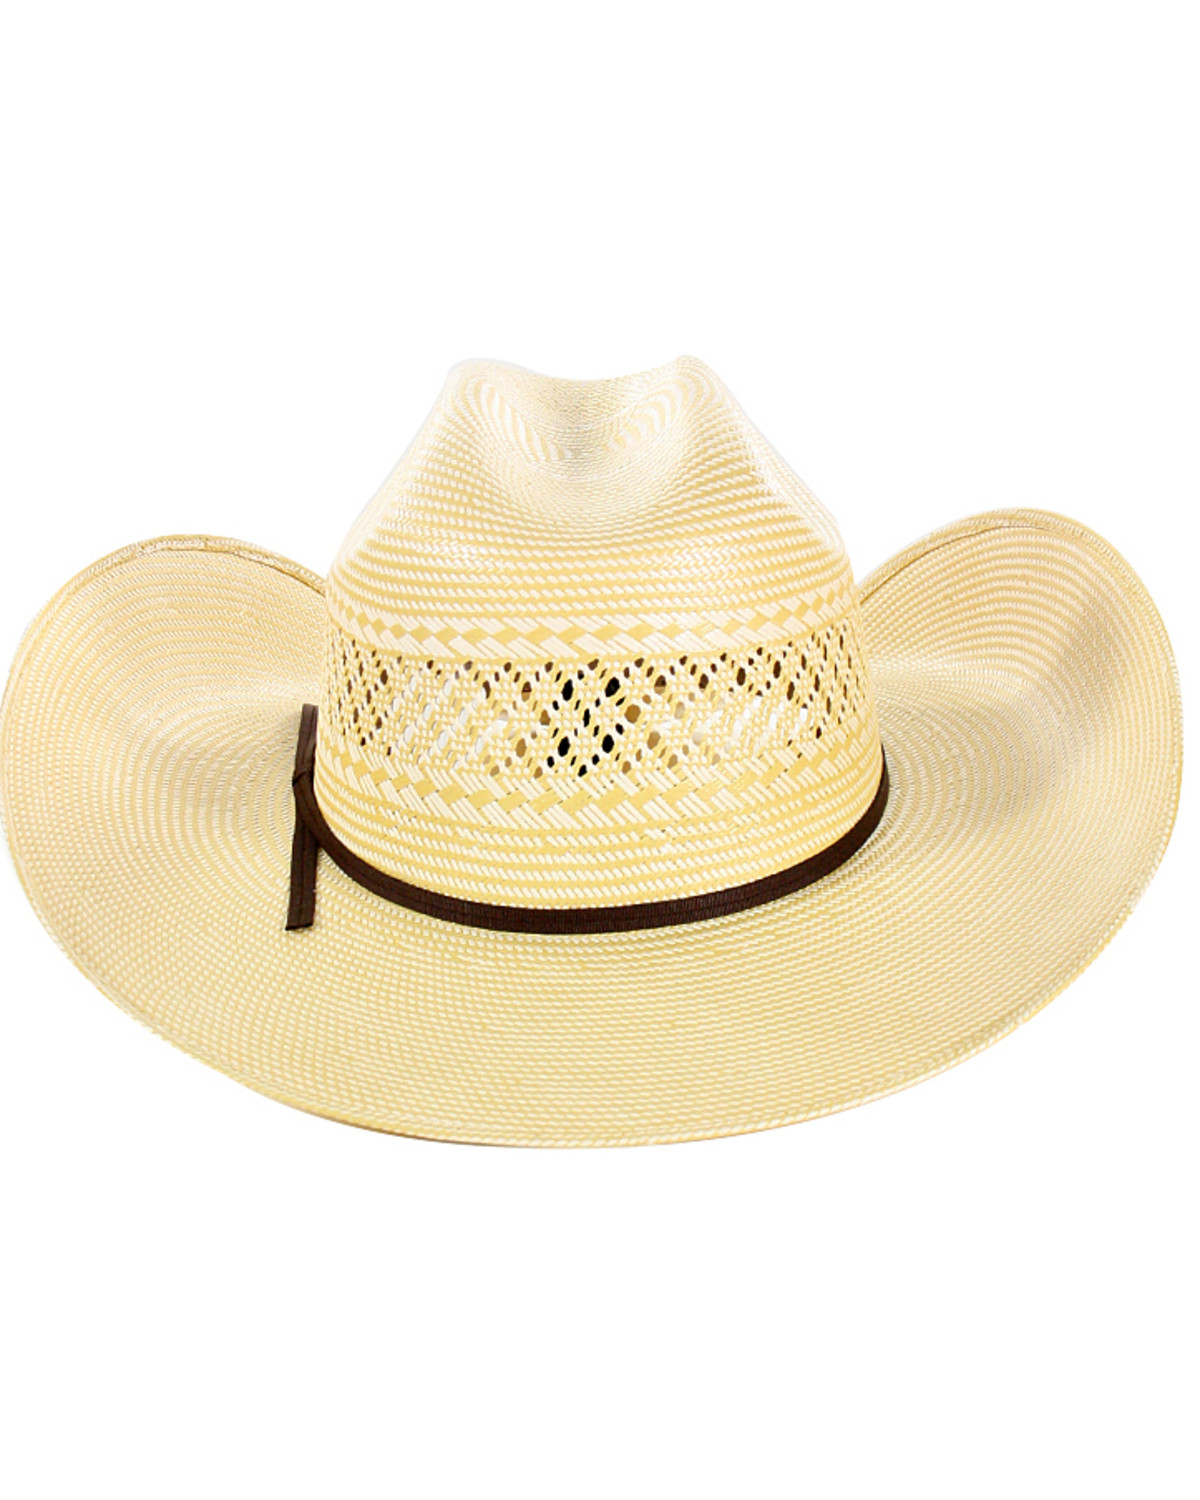 Cody James Men s 50X Straw Cowboy Hat - Country Outfitter f119a0f3de8